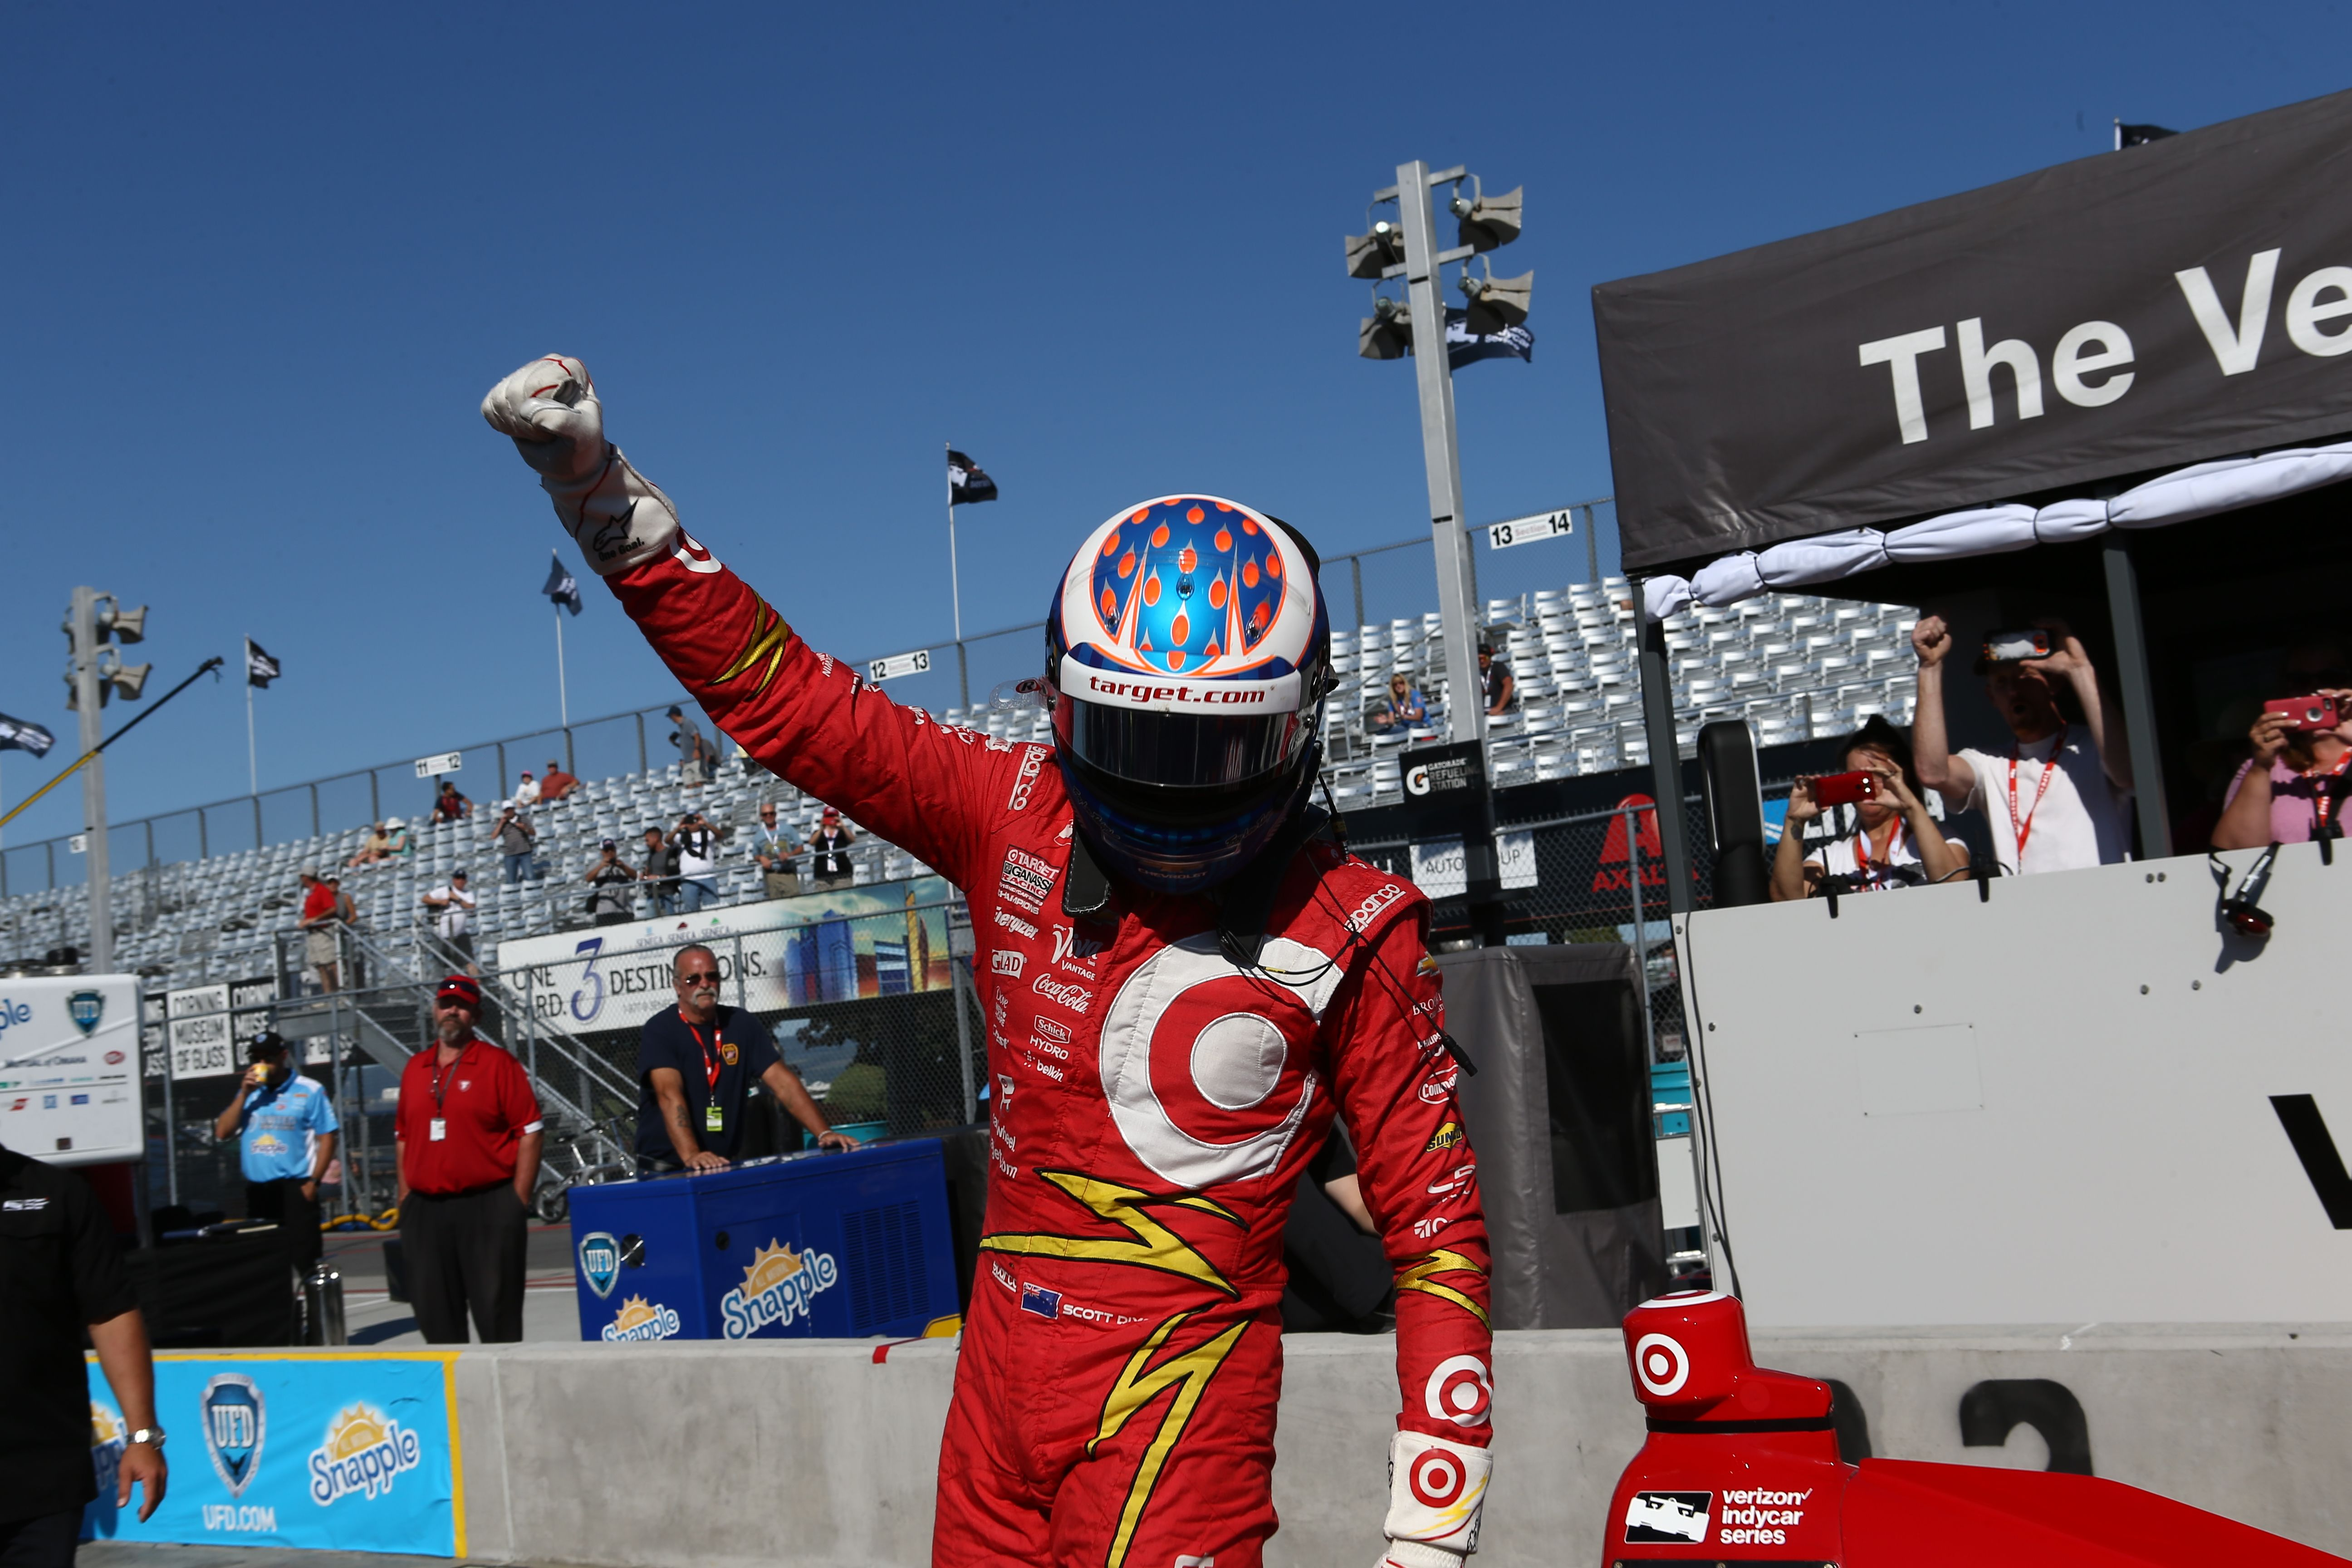 watkins glen singles over 50 Suárez now goes to watkins glen, where he finished 3rd last season, his only top-5 finish of his rookie season who could steal a playoff berth at the glen.